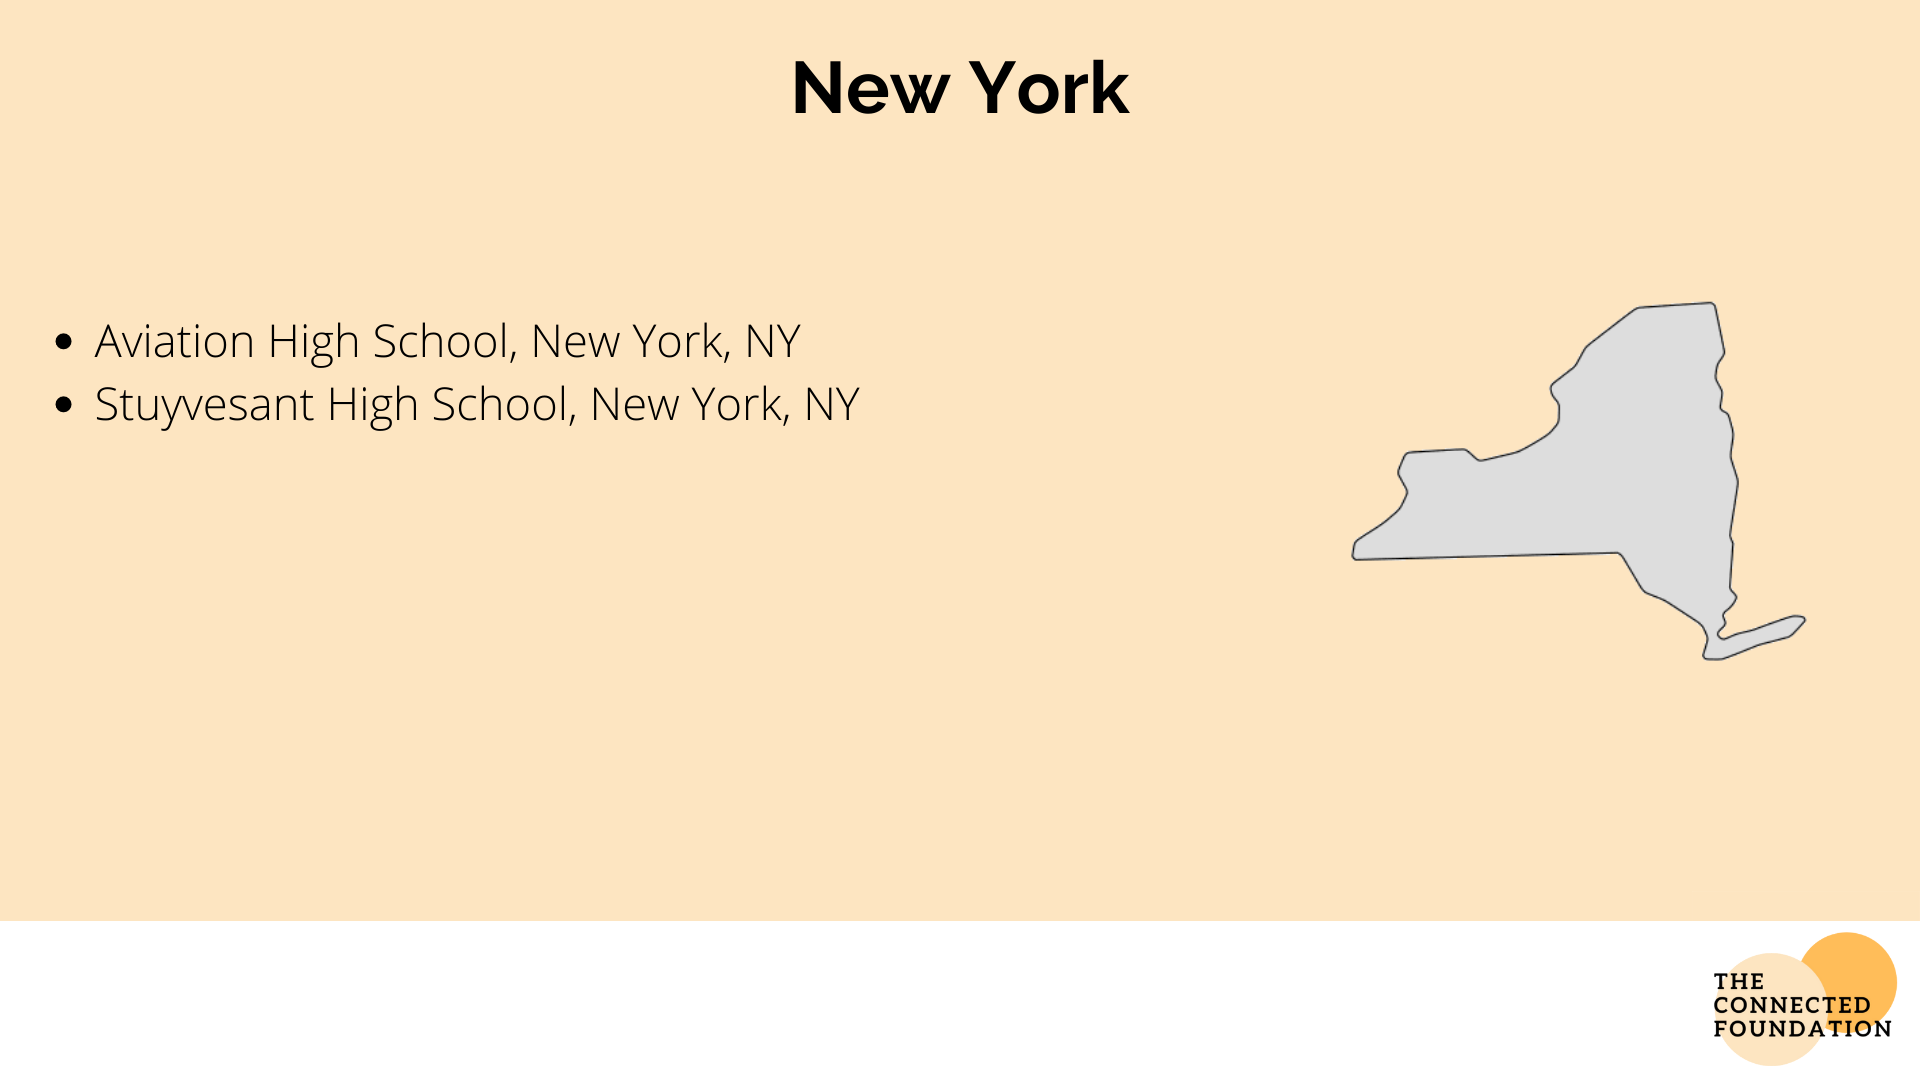 Aviation, and Stuyvesant High Schools in New York